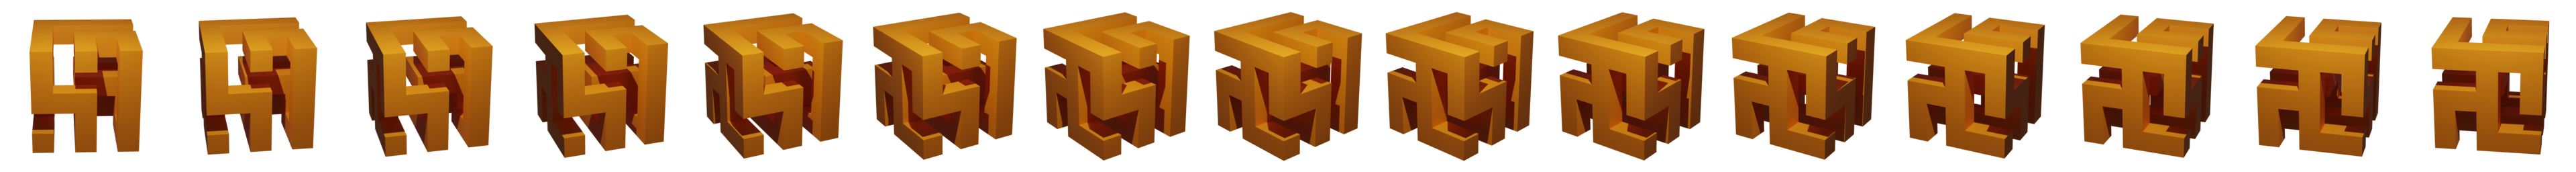 A divider made up of orange renders of a small 7x7x7 maze rotating